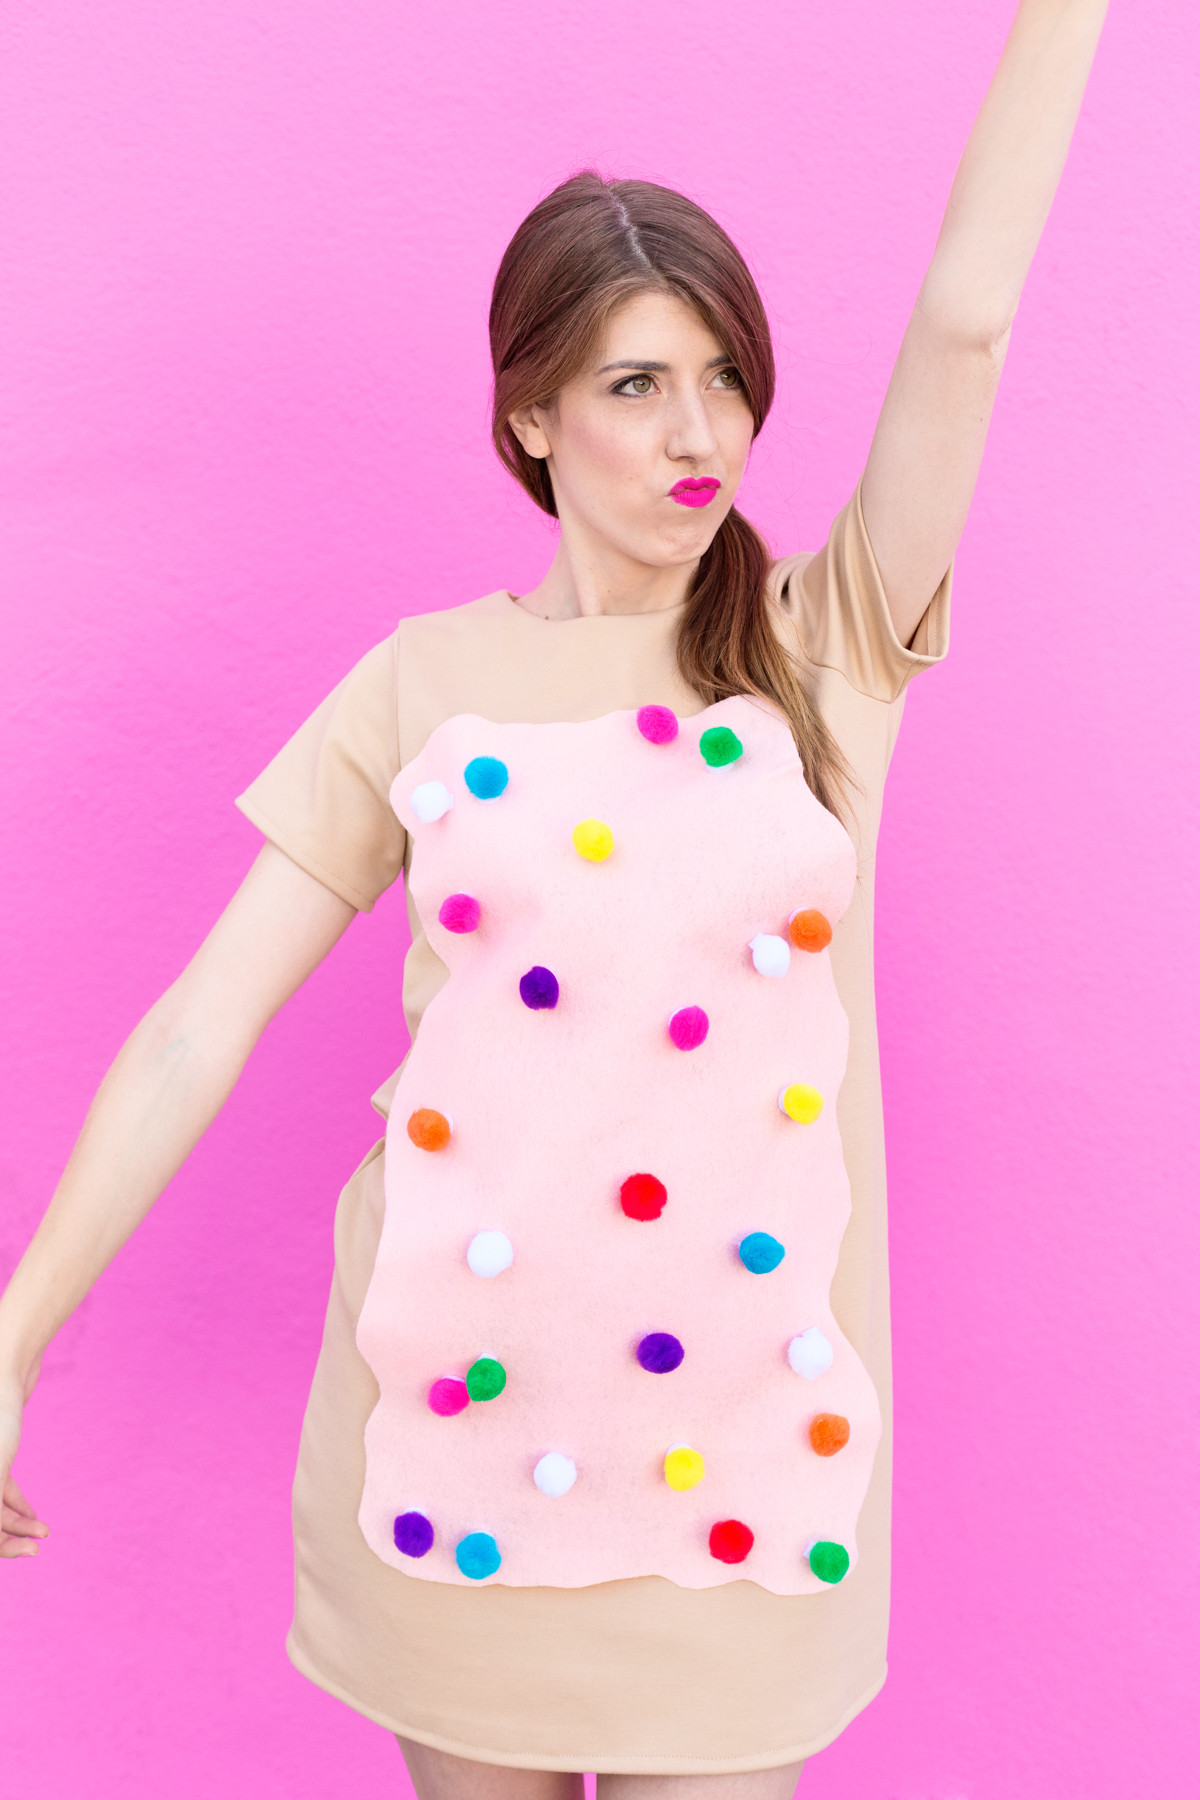 Best ideas about DIY M&M Costume . Save or Pin DIY Toaster Pastry Costume Studio DIY Now.